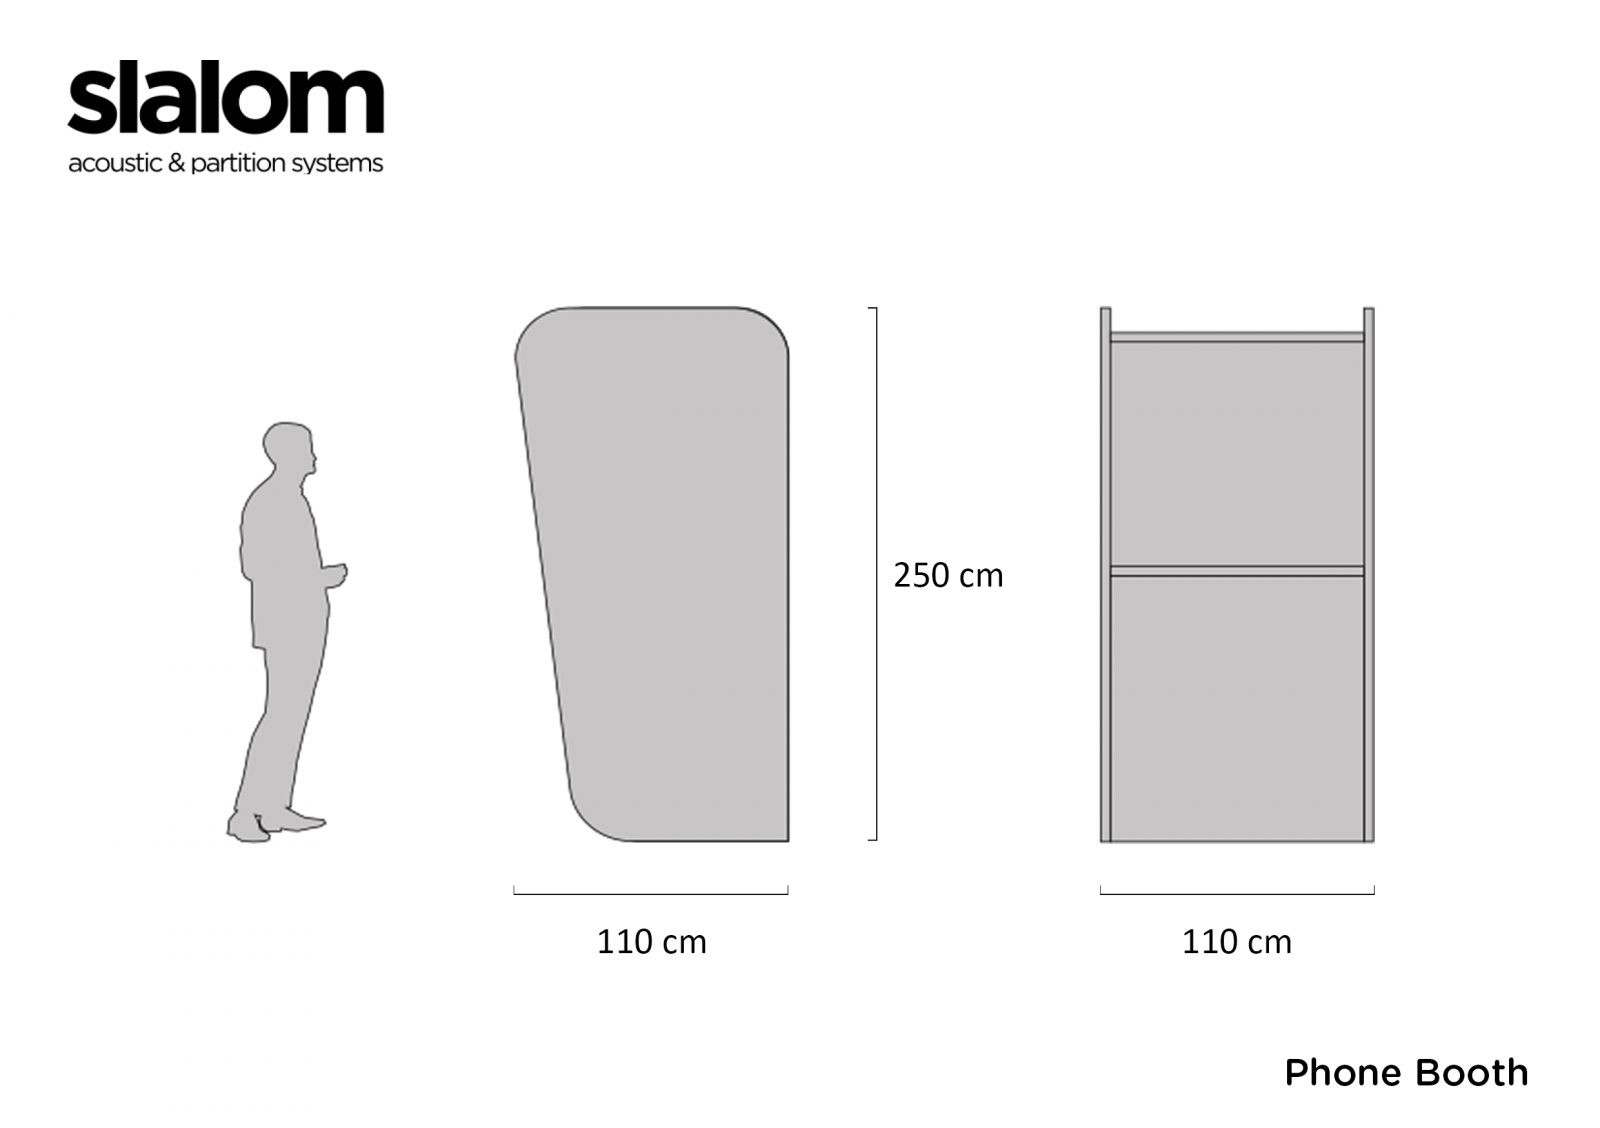 Soundproof Phone Booth Dimensions